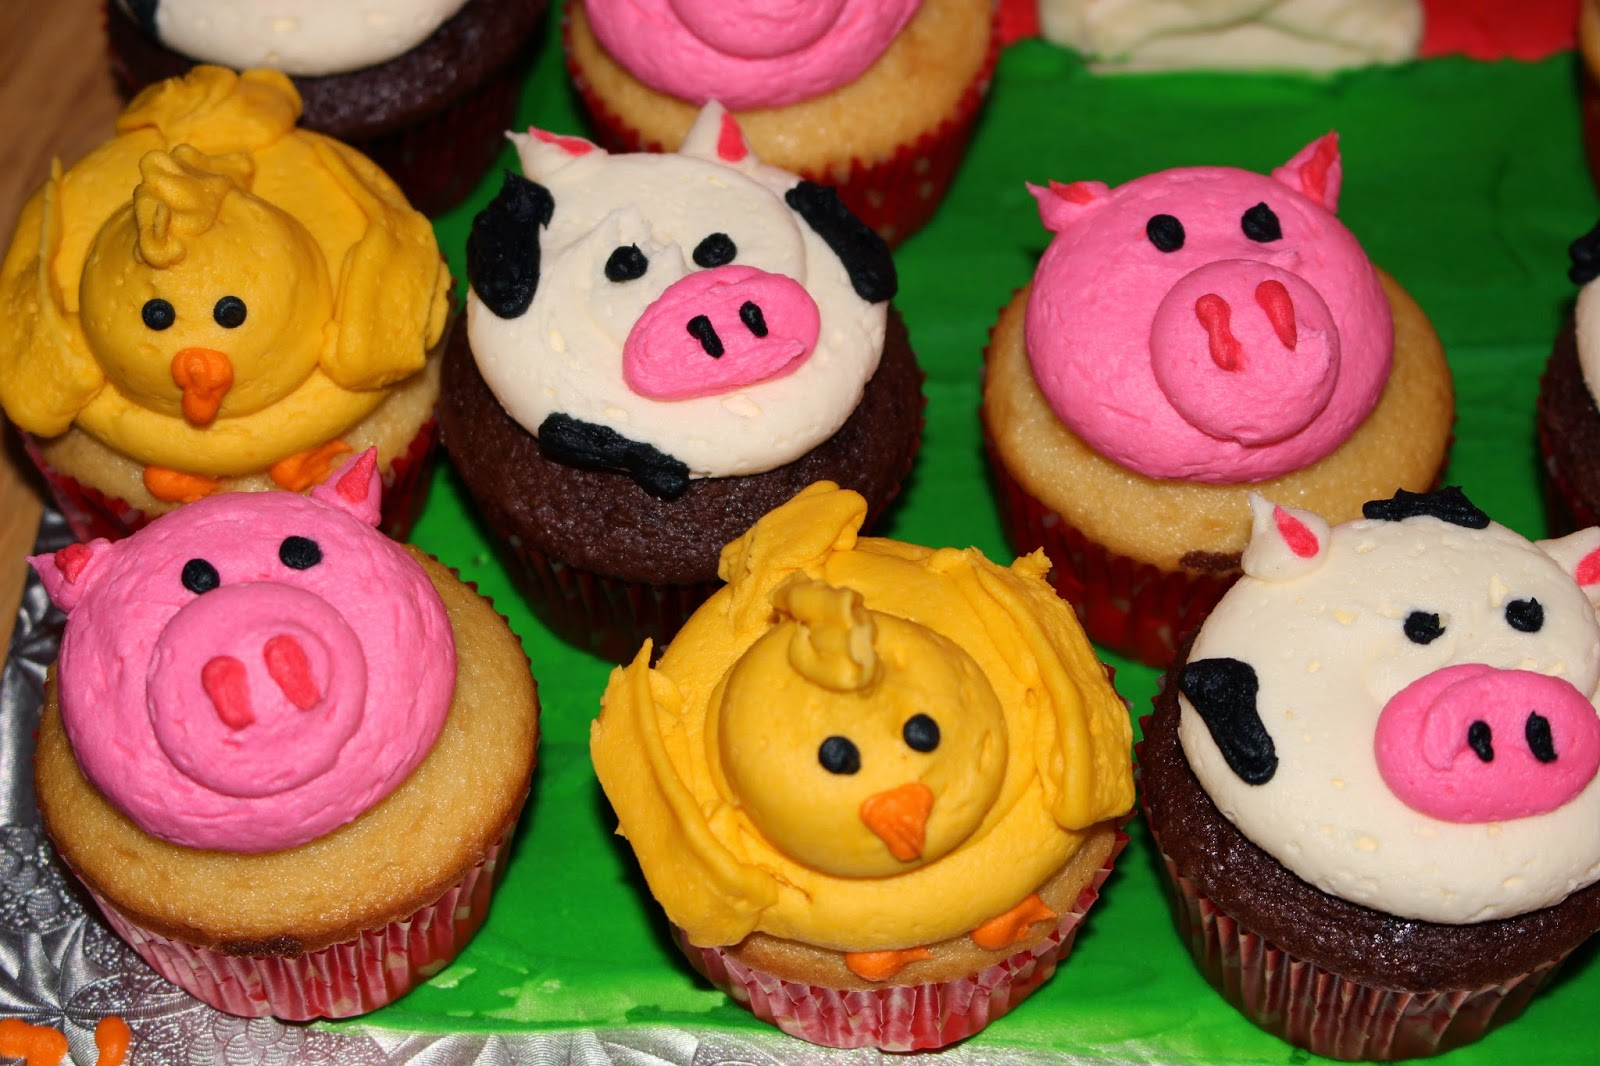 Morgie S Sweet Treats Farm Animal Cupcakes And Barn Cake